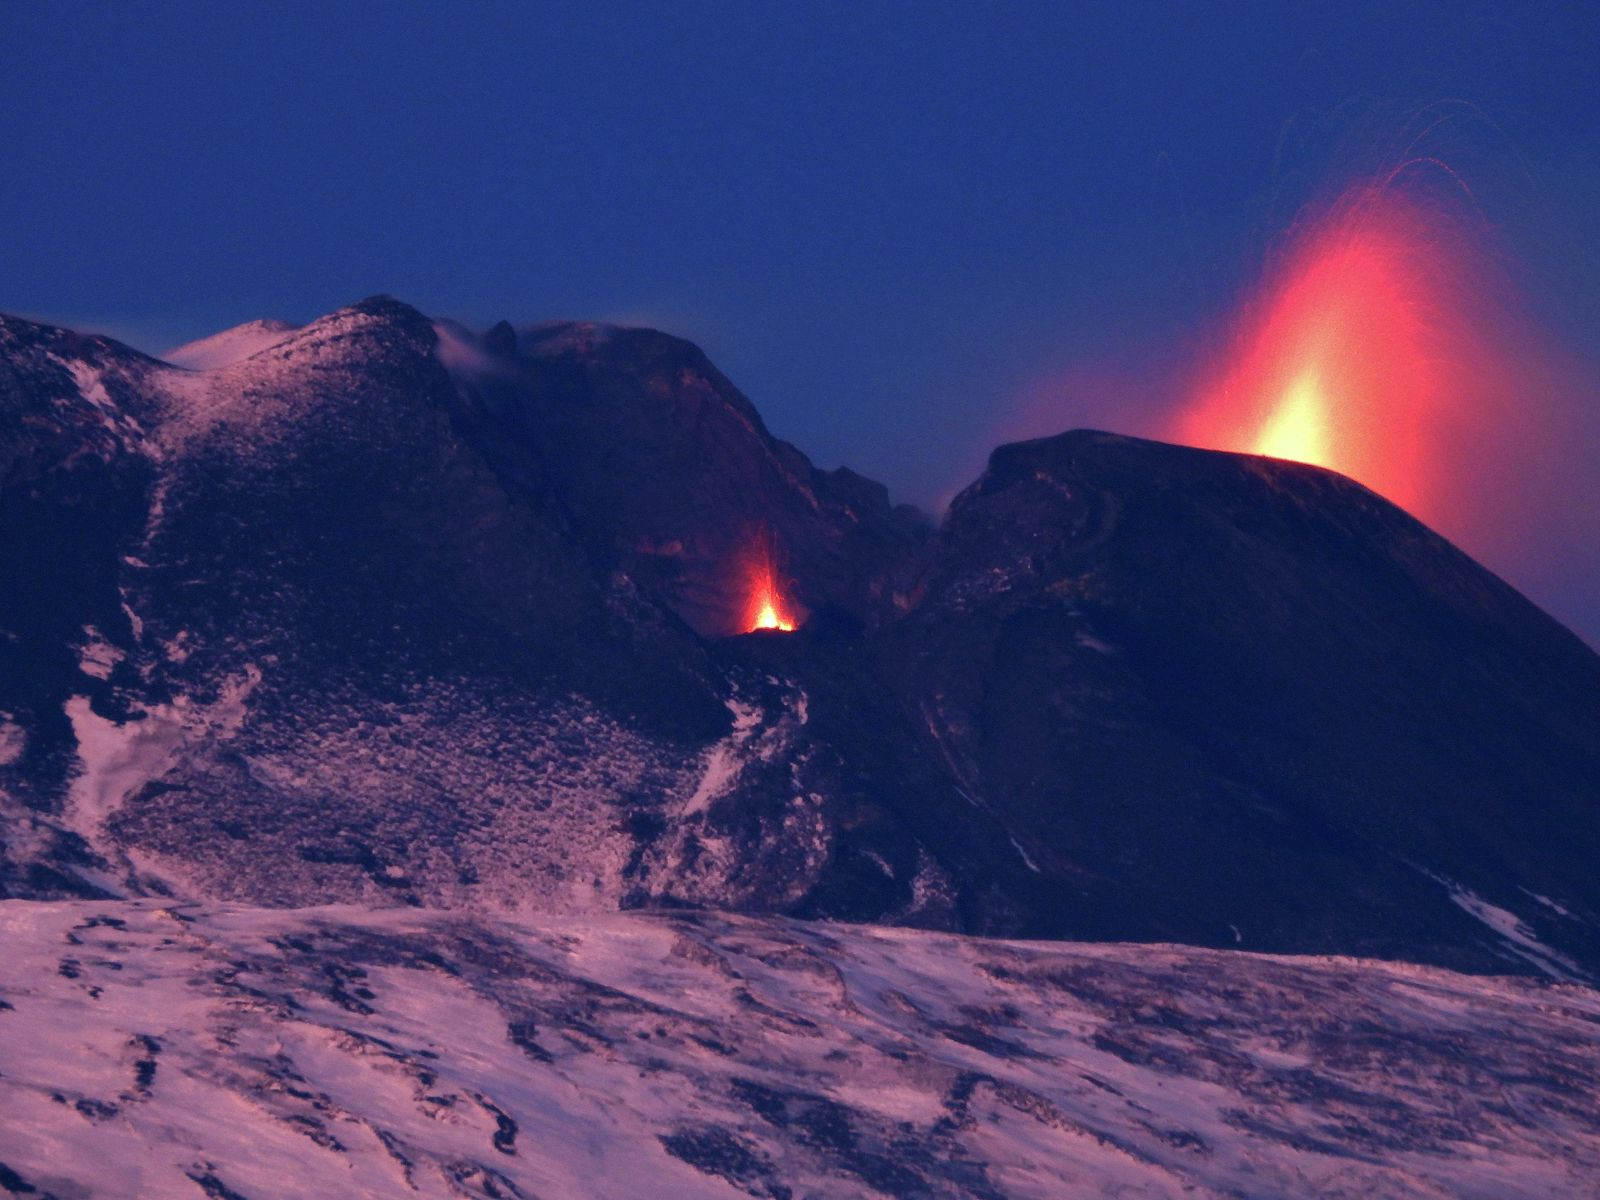 Etna SEC, seen from Biancavilla, on the southwest flank of the volcano - explosions at vents located in the scar this 02.12.2021 - photo Boris Behncke